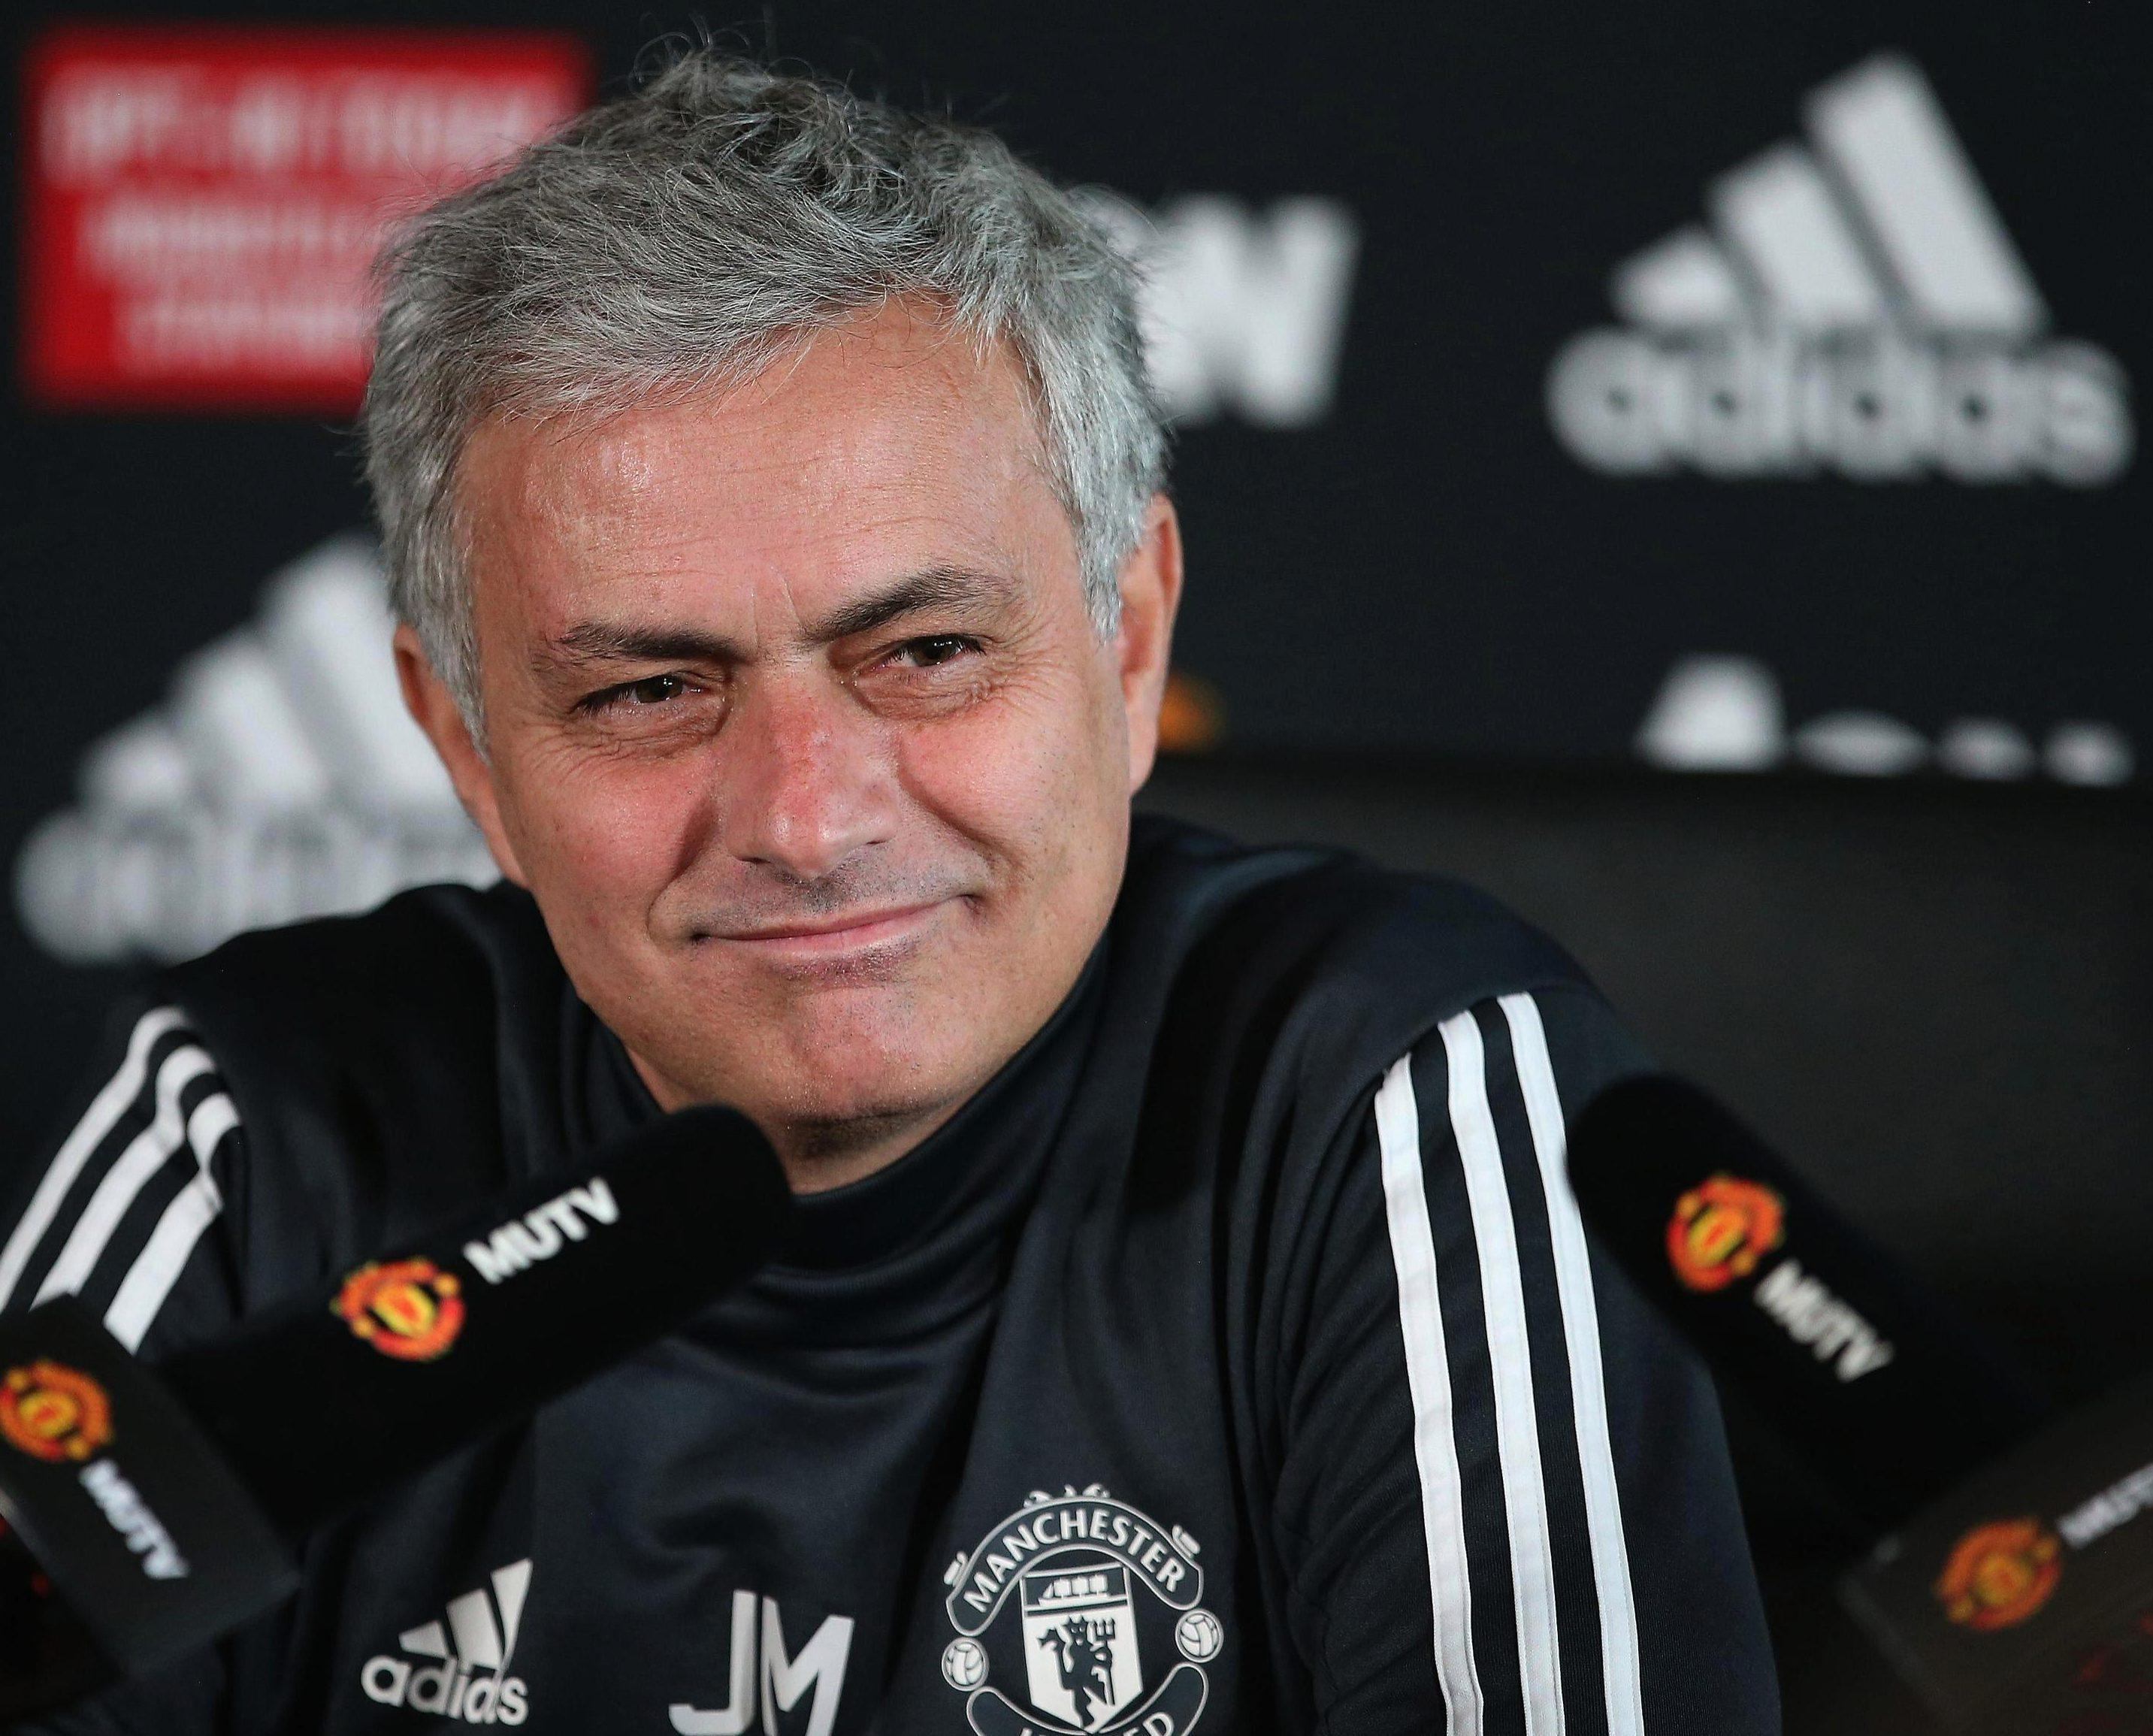 Mourinho could be in for a testing night